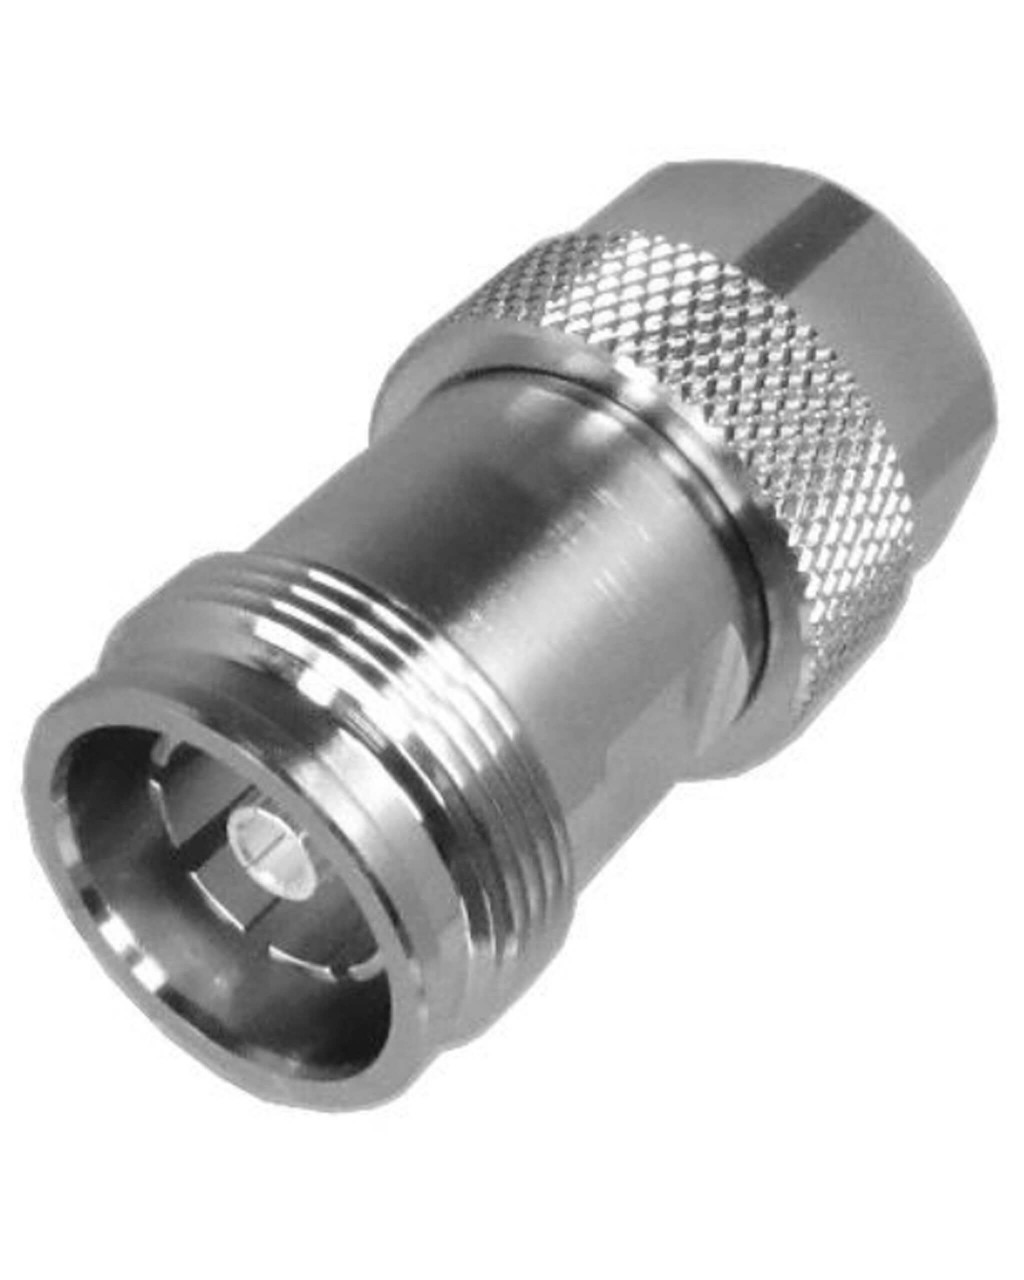 Bolton Adapter - Straight 4.3/10 Male to N-Female -160 dBc Low Pim